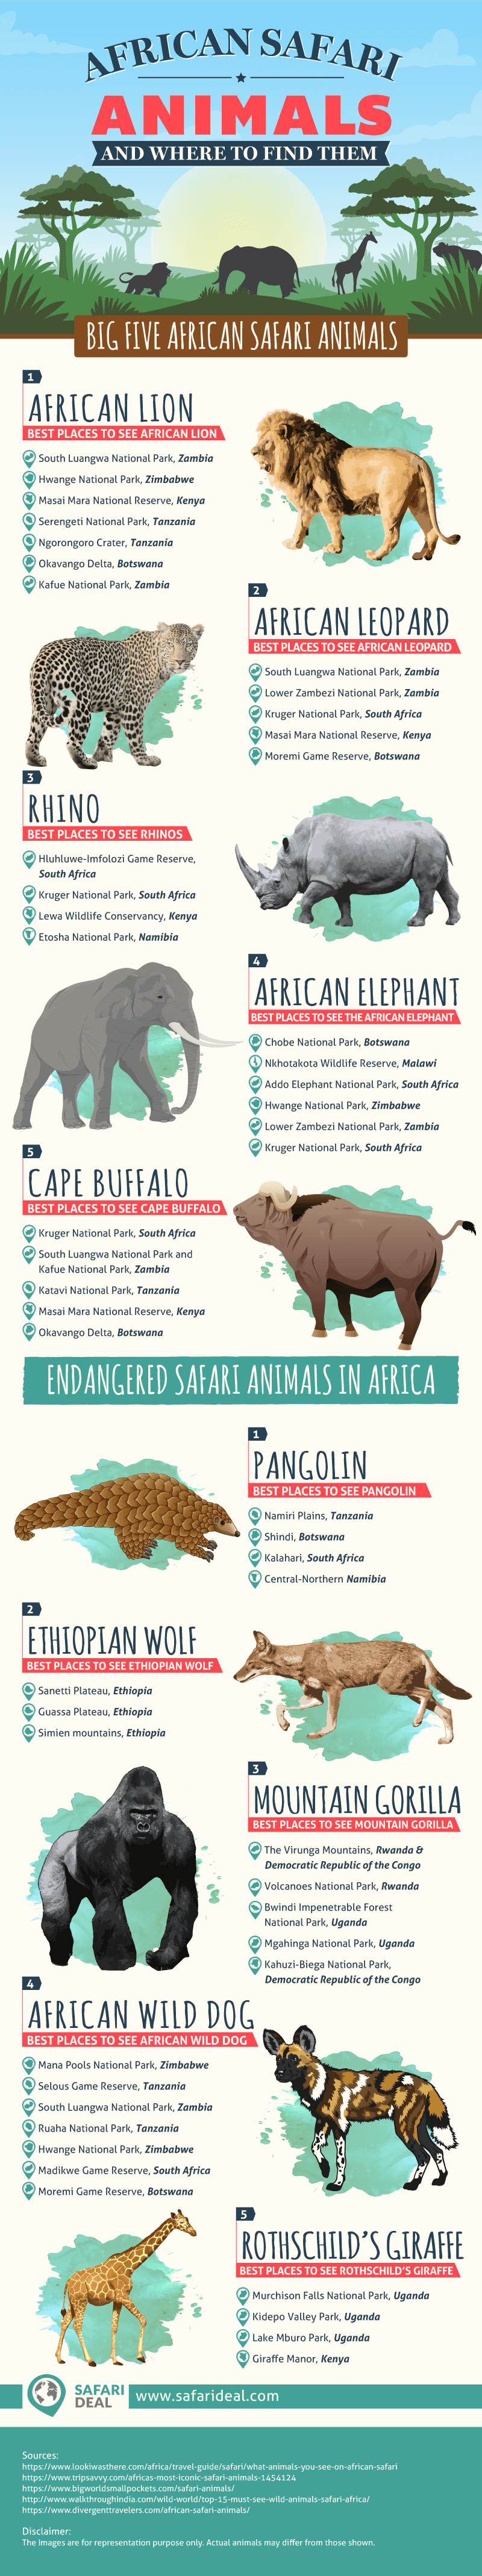 Big 5 African Safari Animals & where to find them infographic.